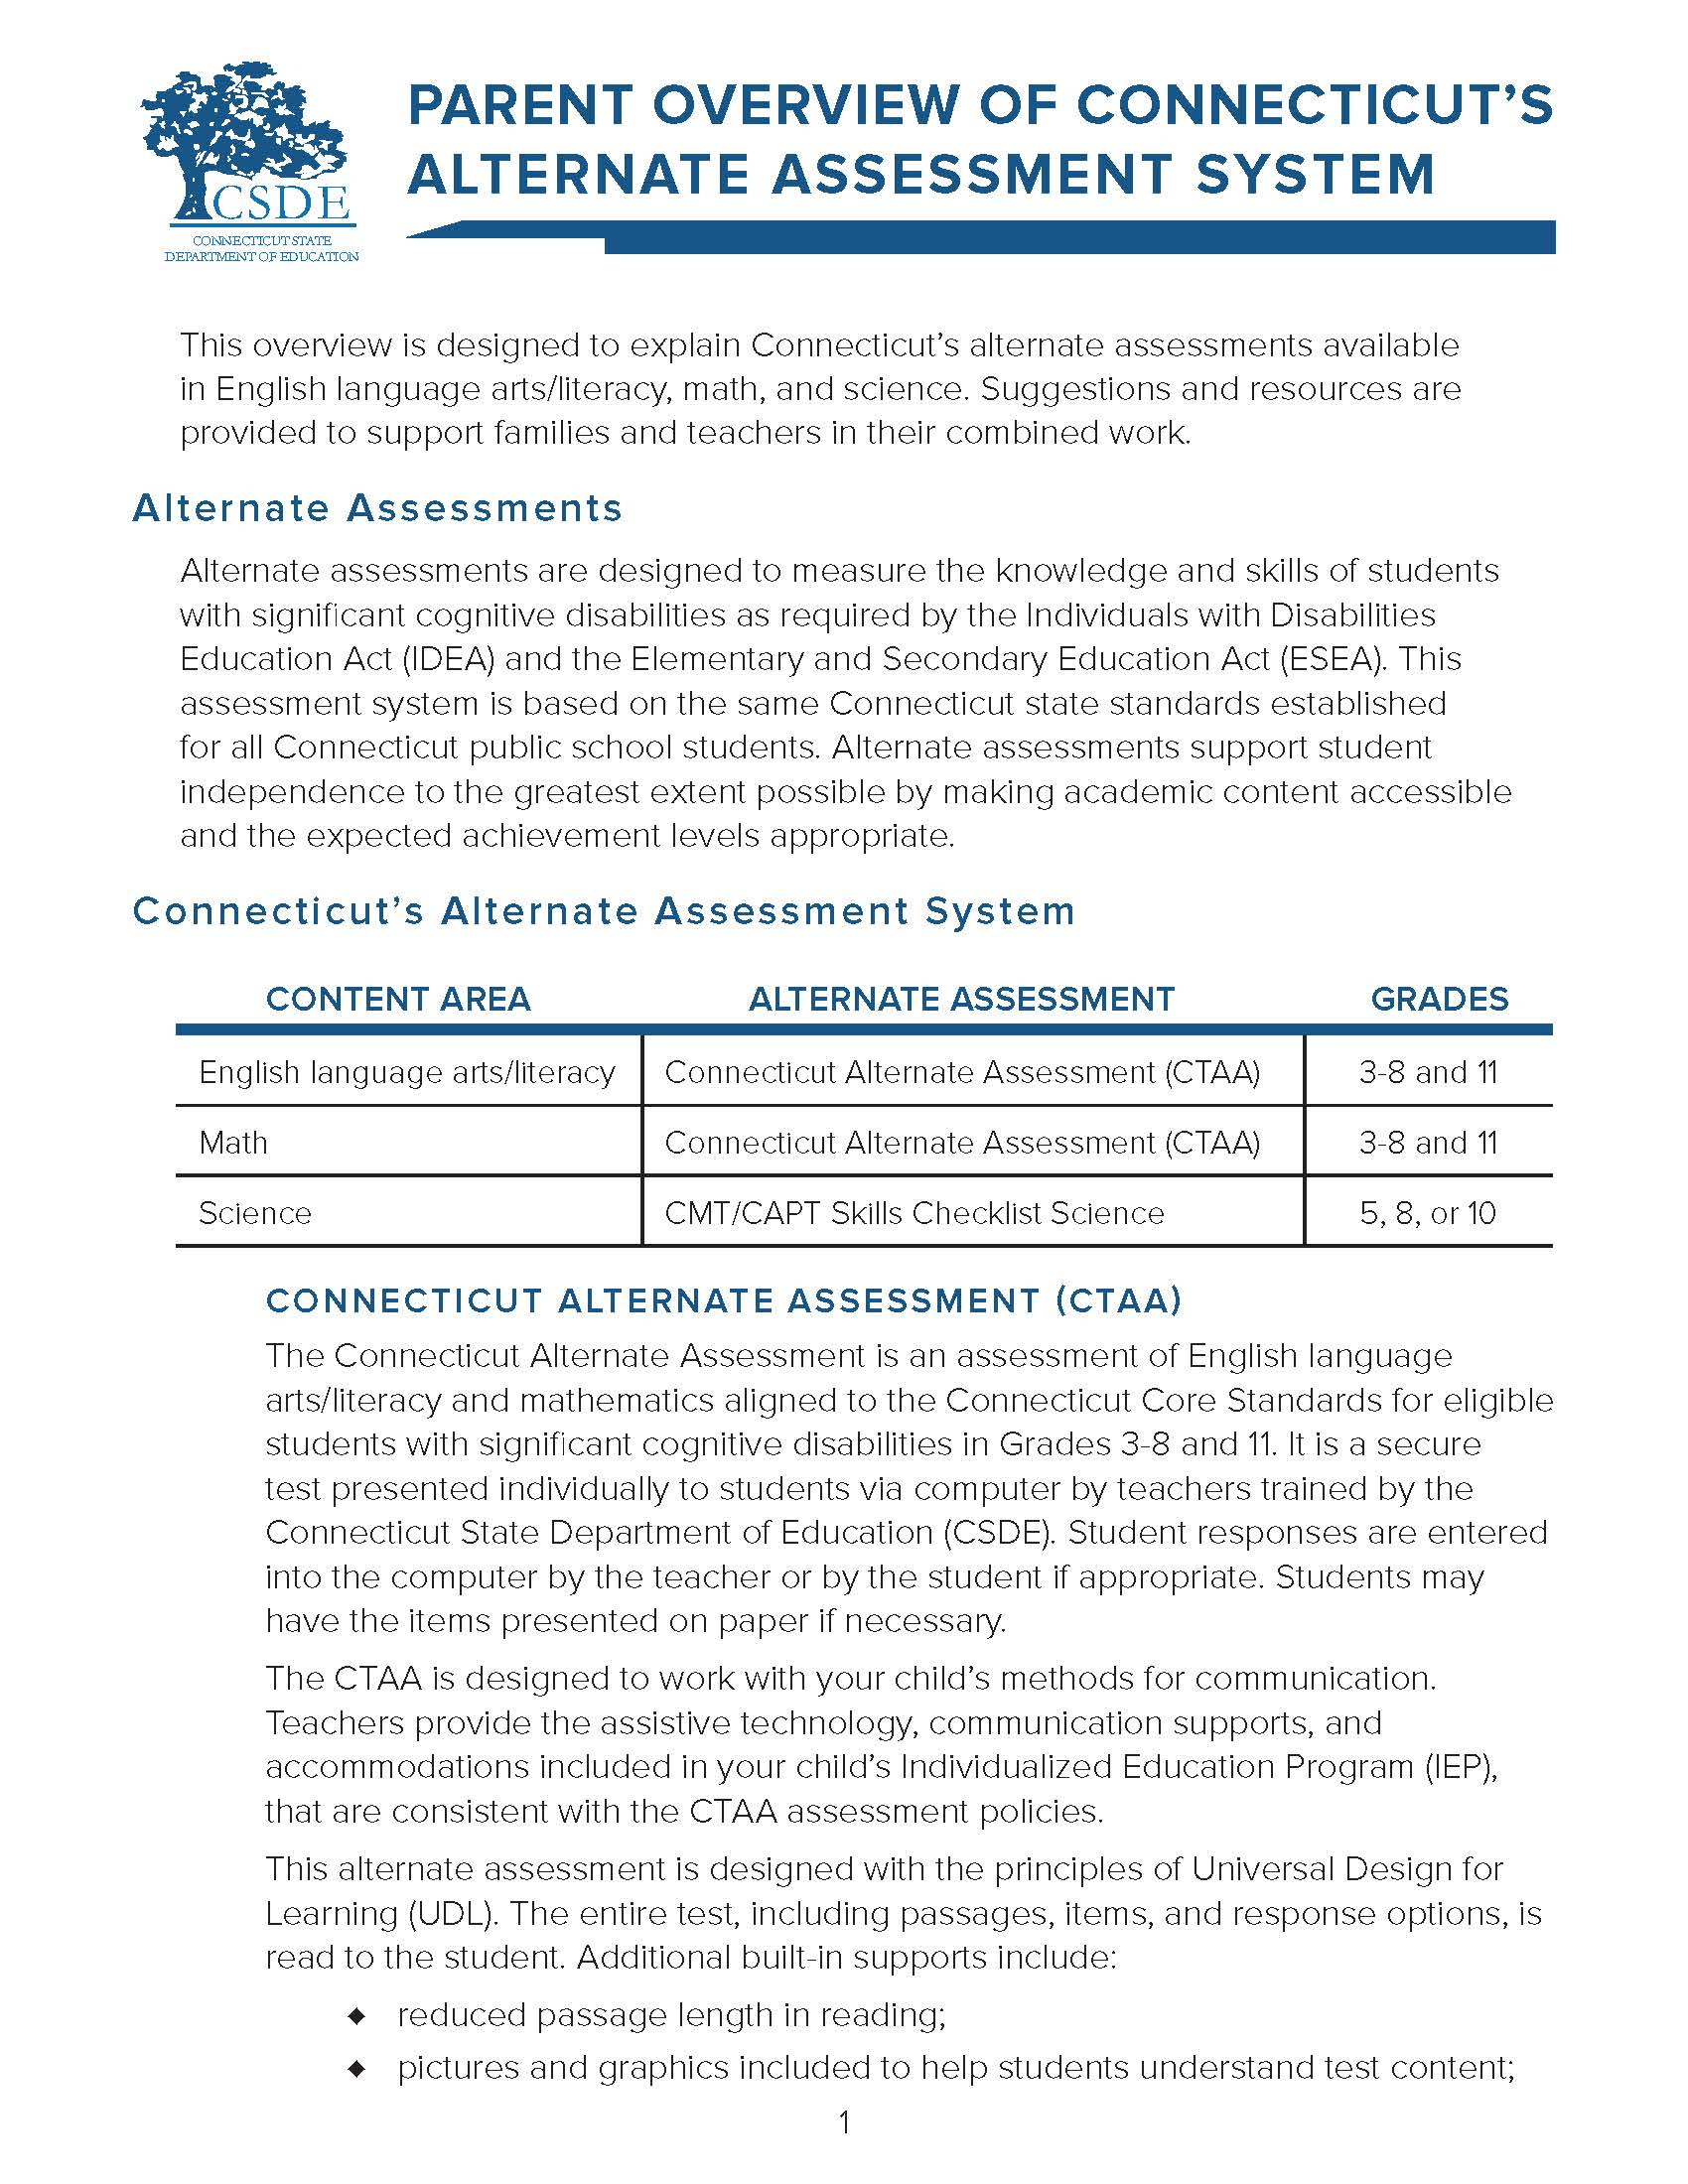 Image of Parent Overview of Connecticut's Alternate Assessment System Document